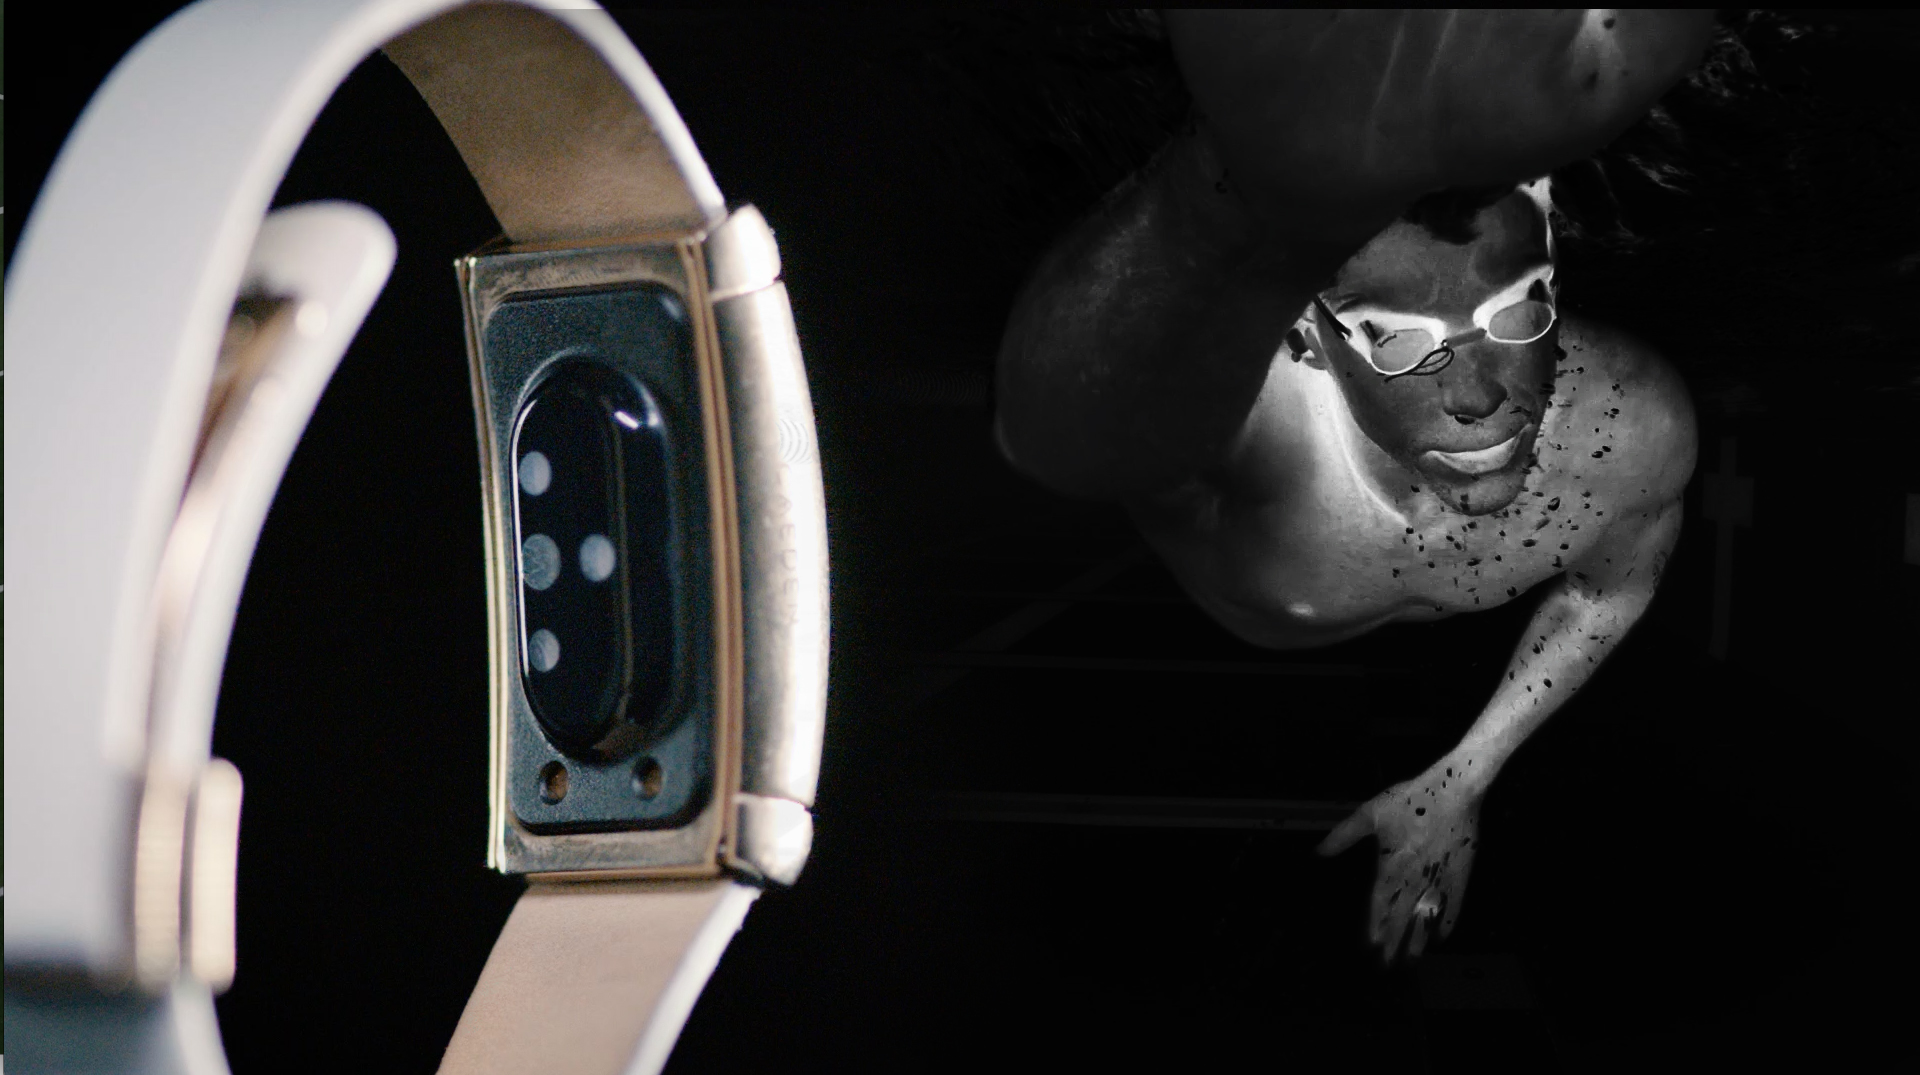 Revere La Noue collaborated with engineers and athletes to direct a commercial for a wearable biometrics company.